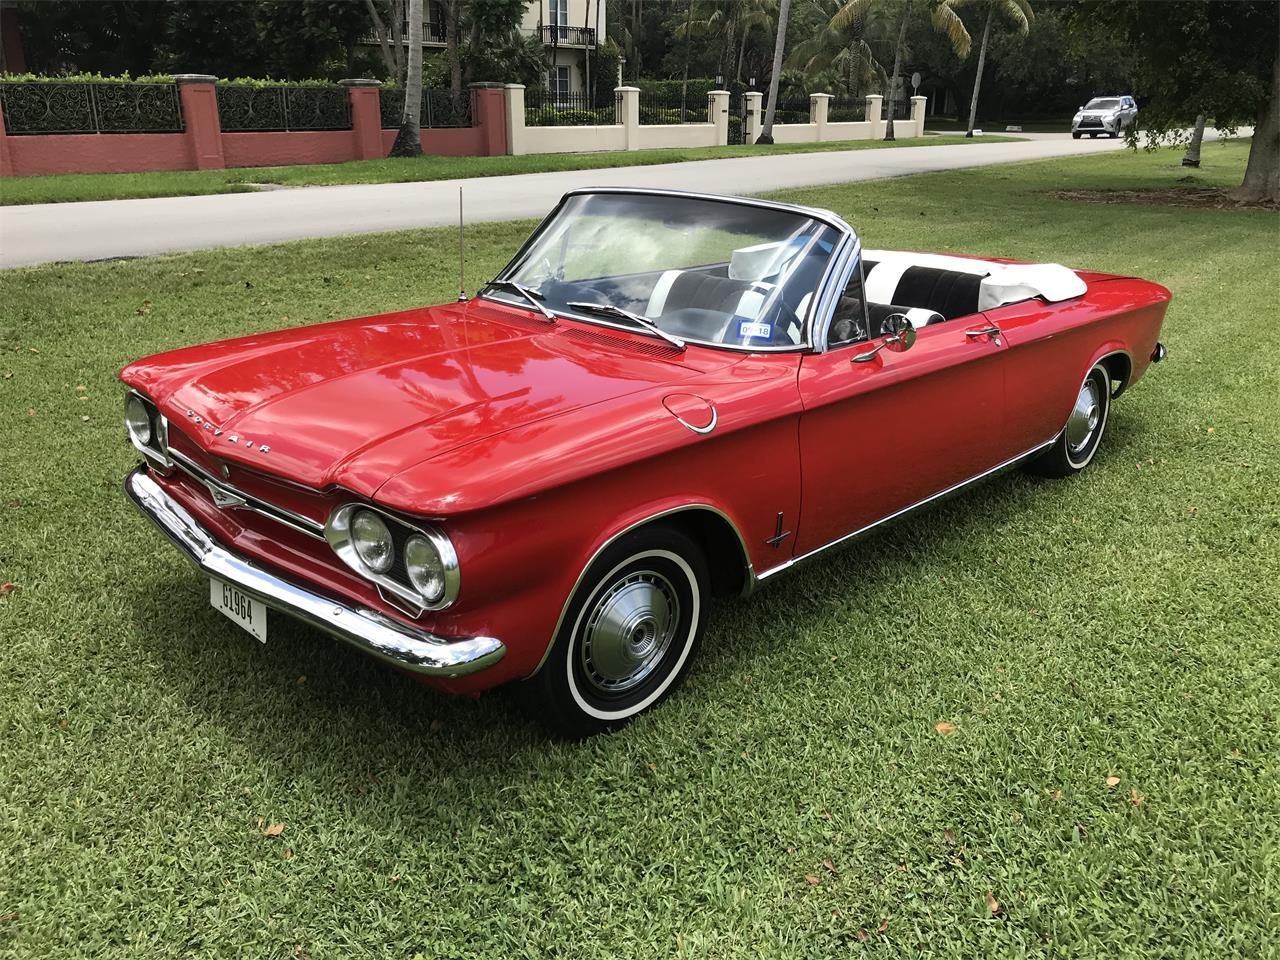 hight resolution of large picture of classic 64 chevrolet corvair monza 12 900 00 onu6